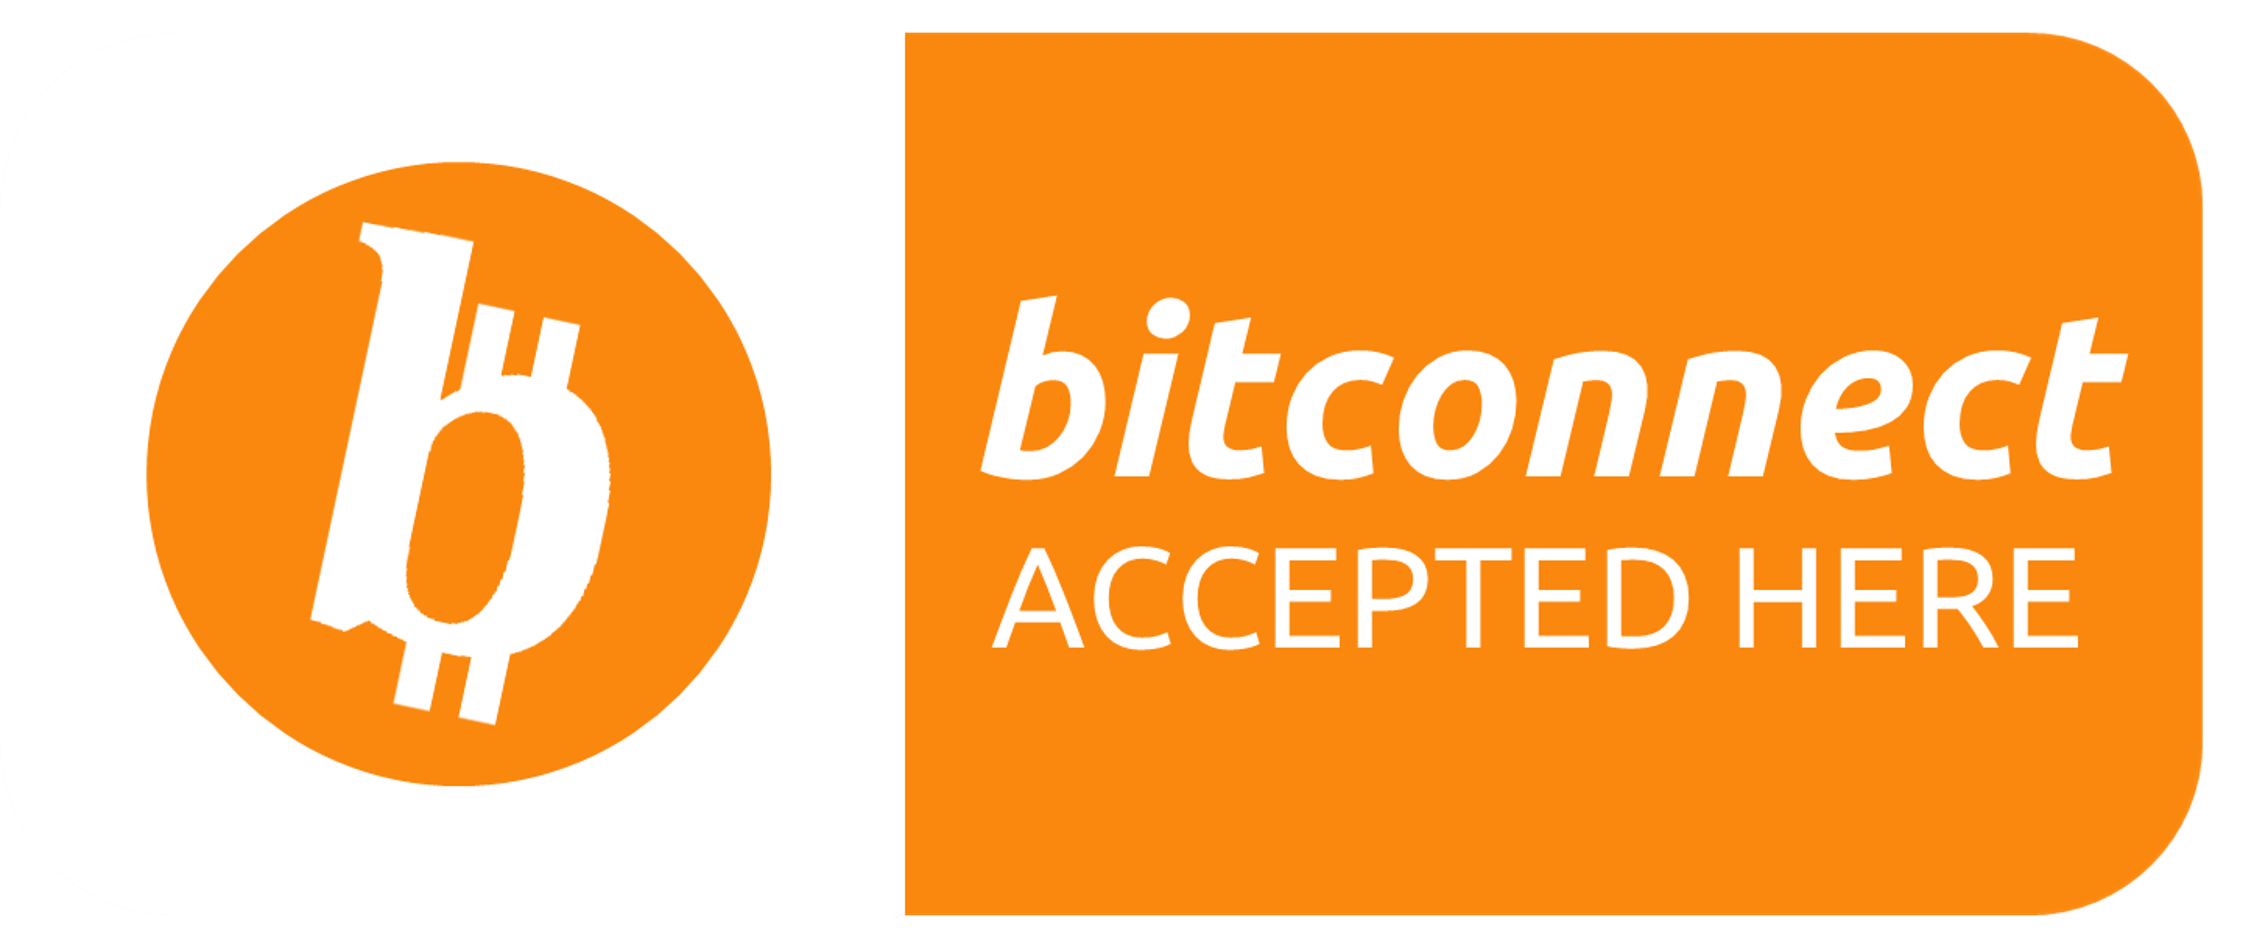 File:Bitconnect accepted big.png.